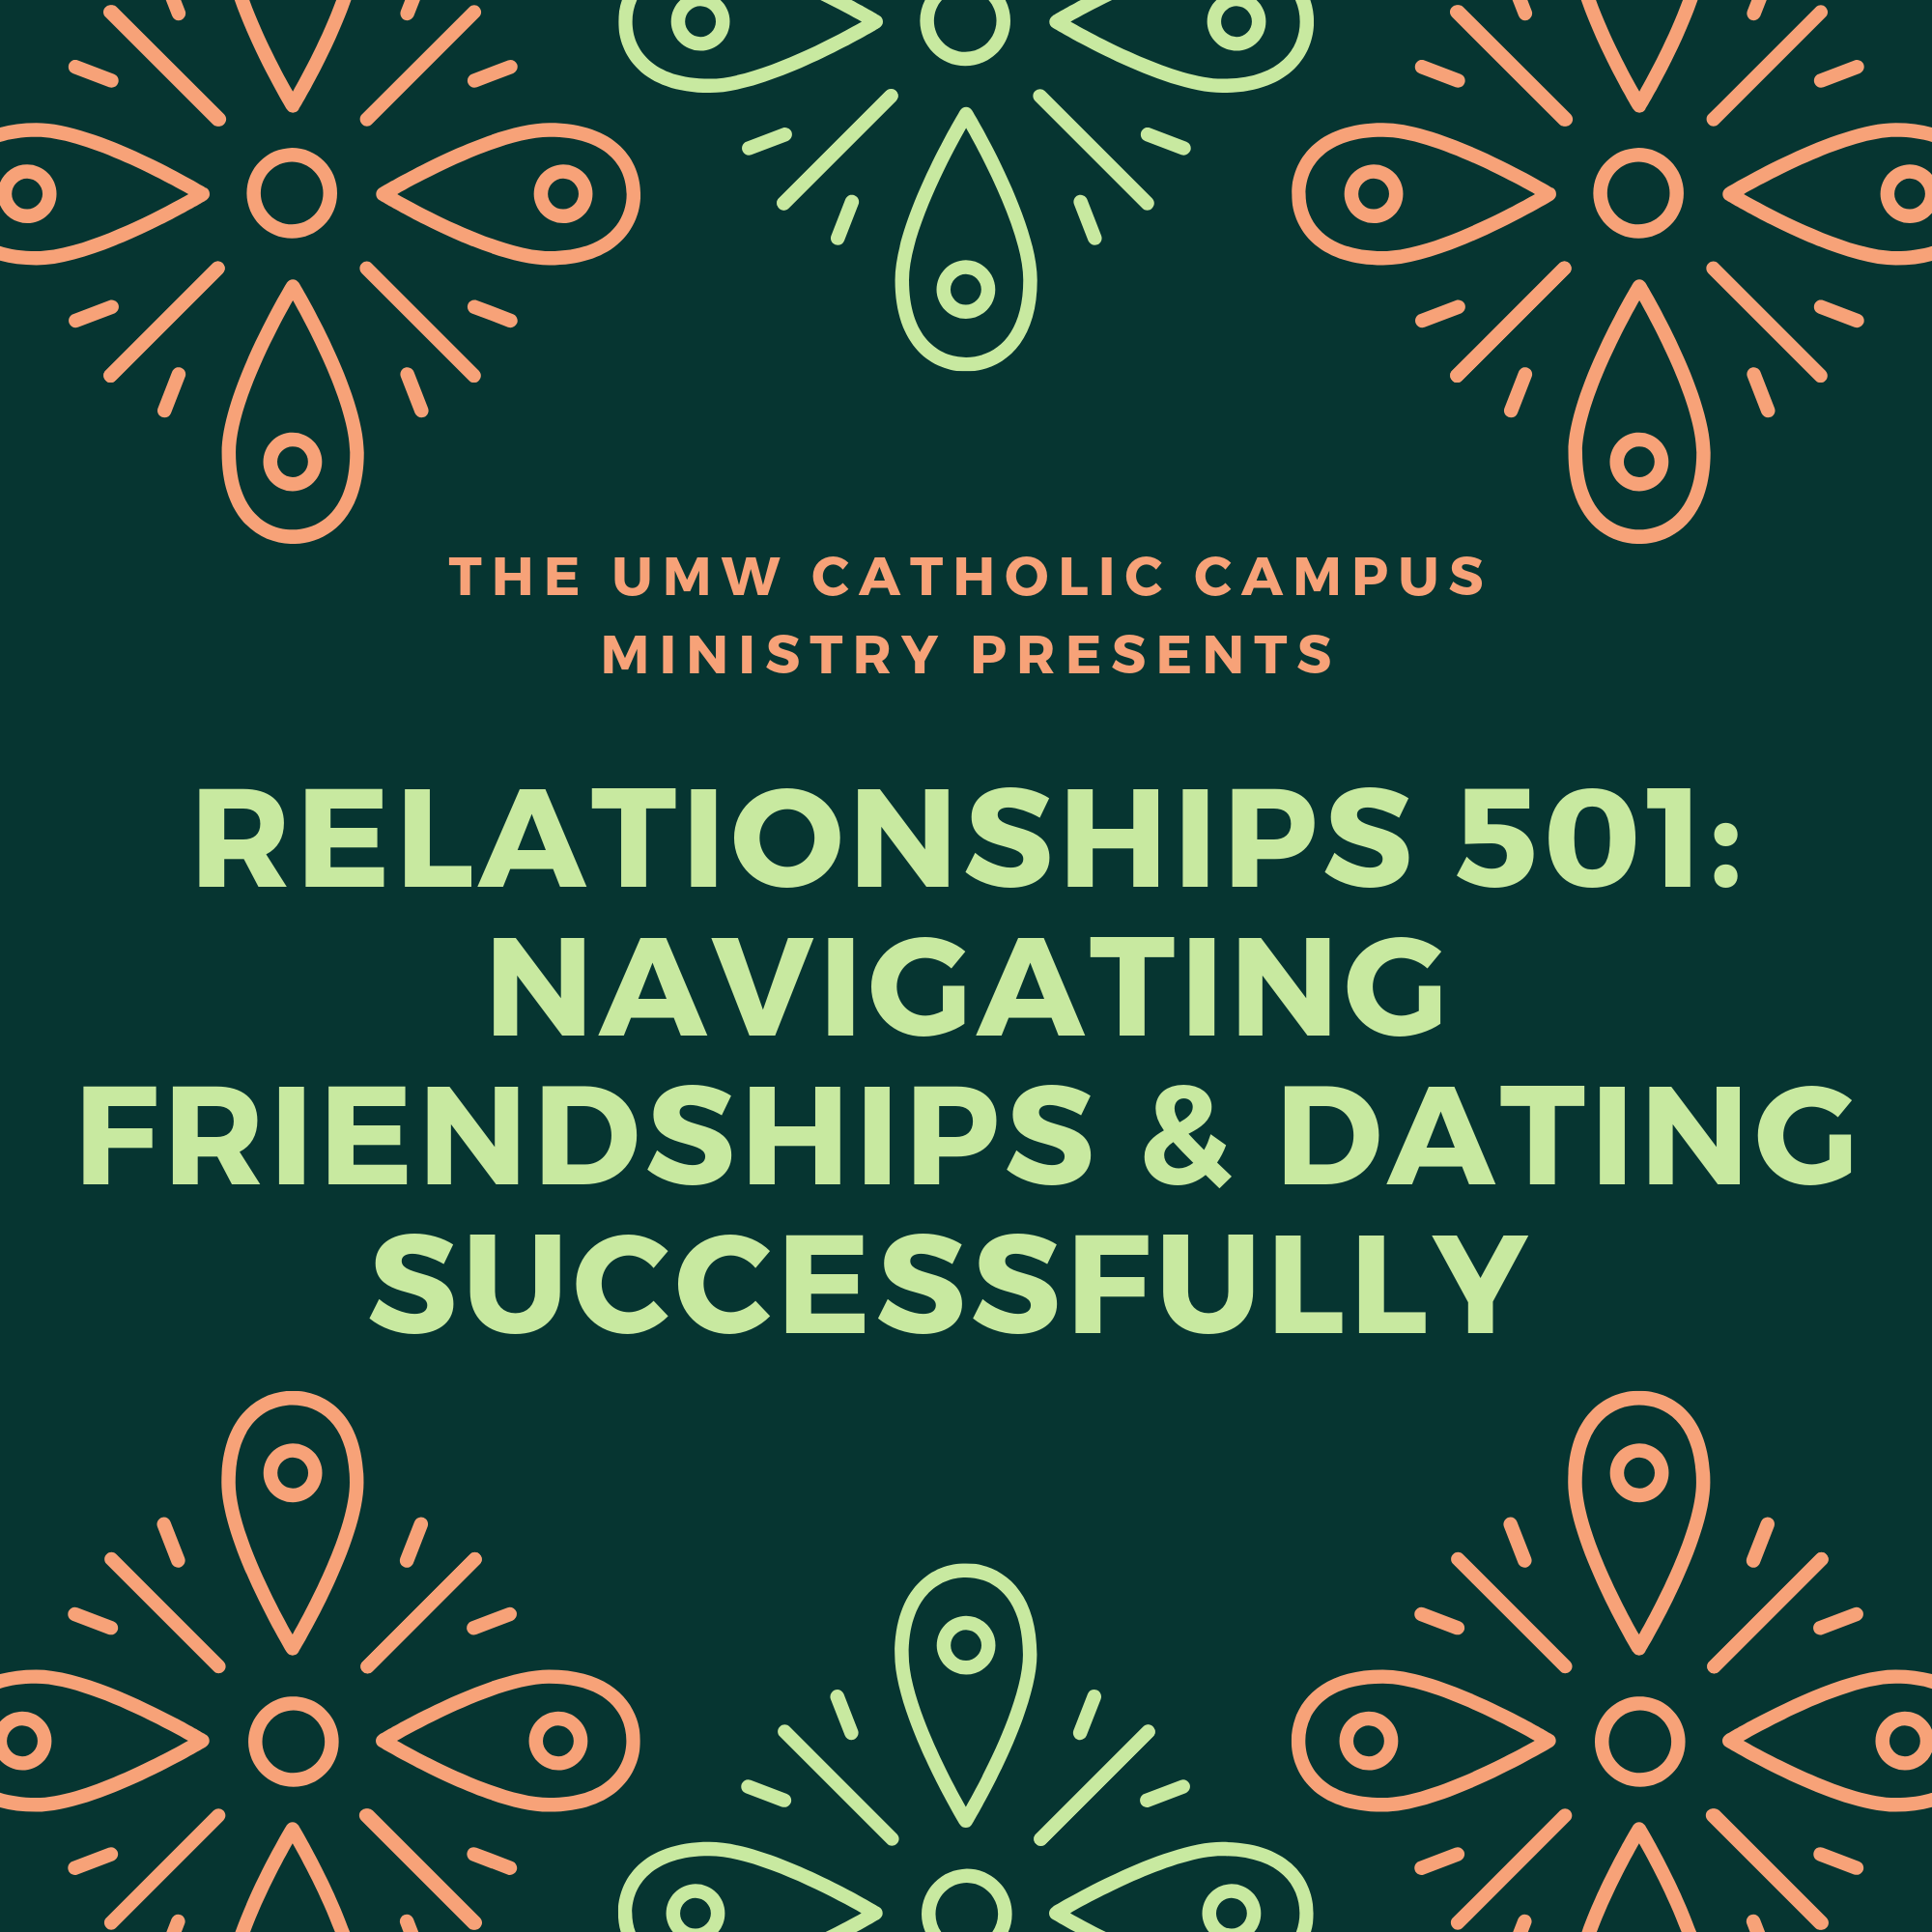 Relationships 501: Navigating Friendships & Dating Successfully  (2019-20)